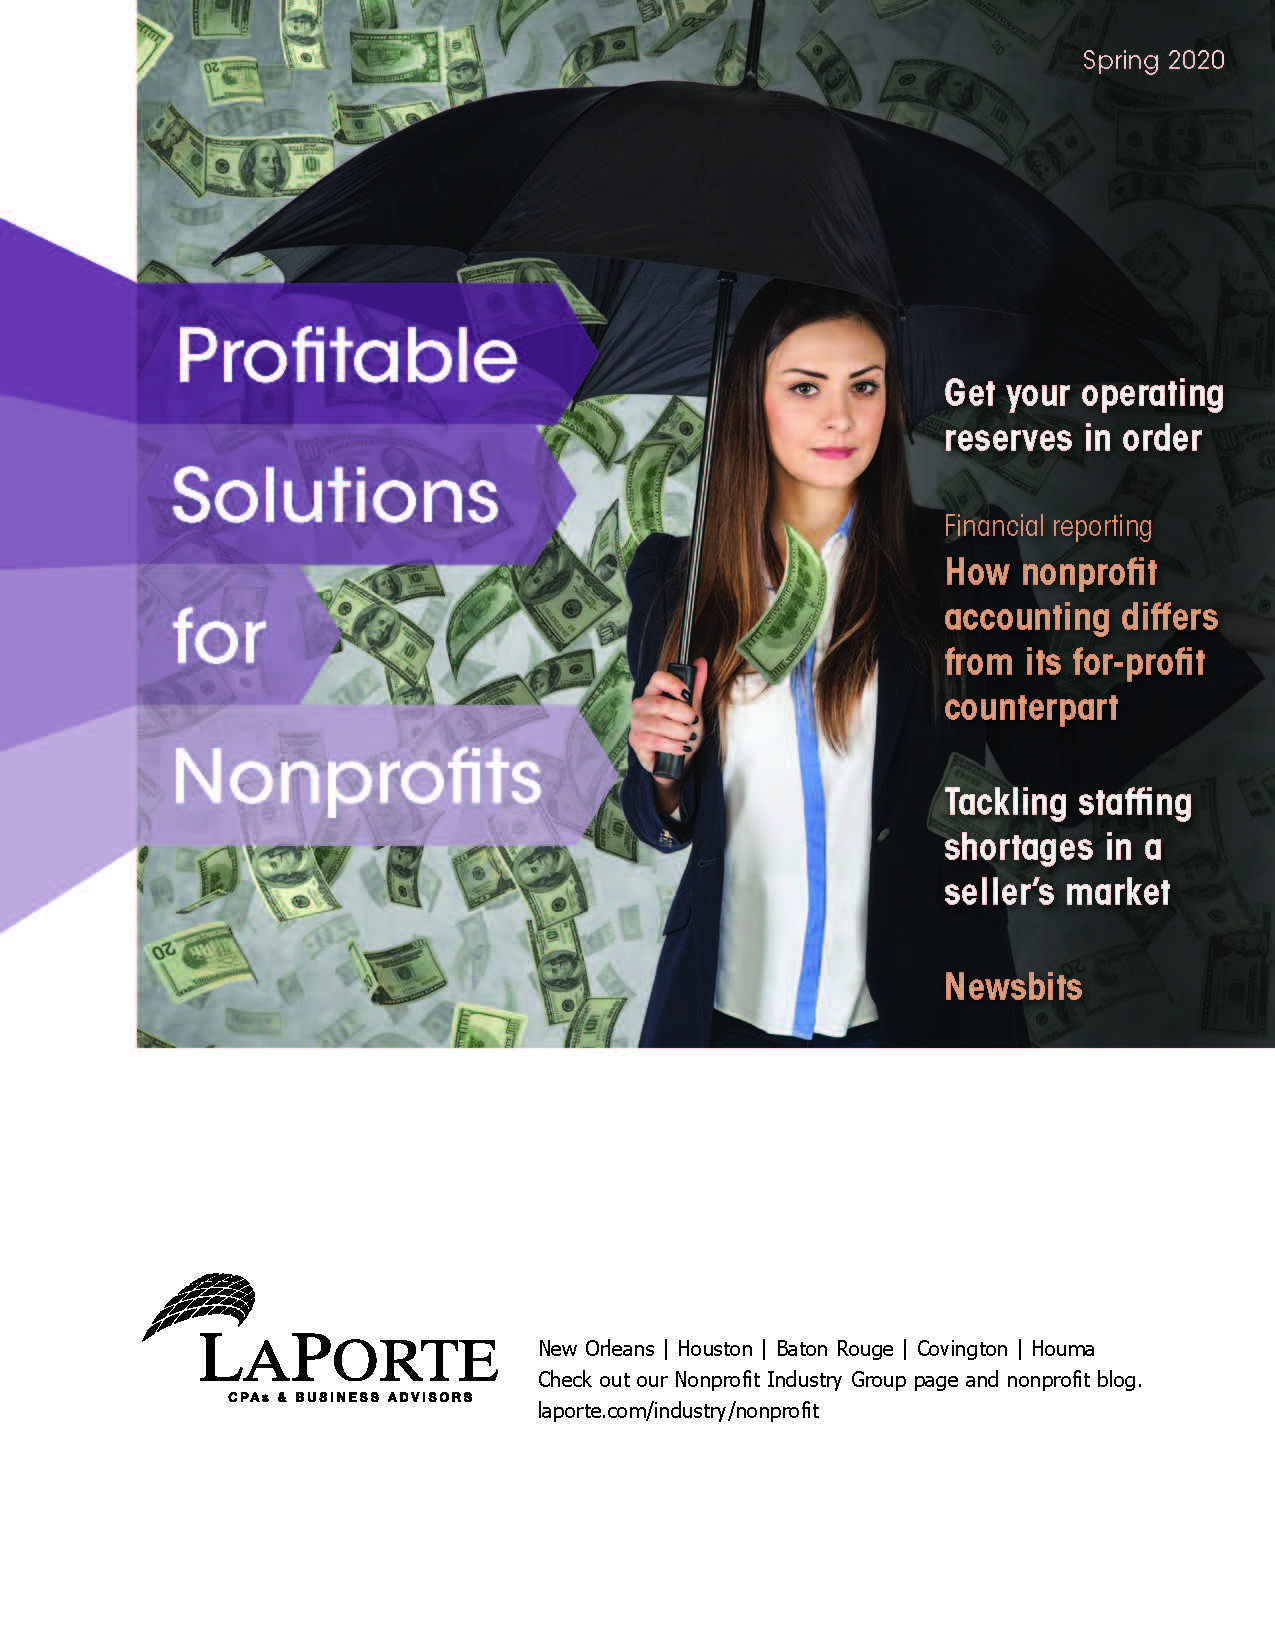 Profitable Solutions for Nonprofits Spring 2020